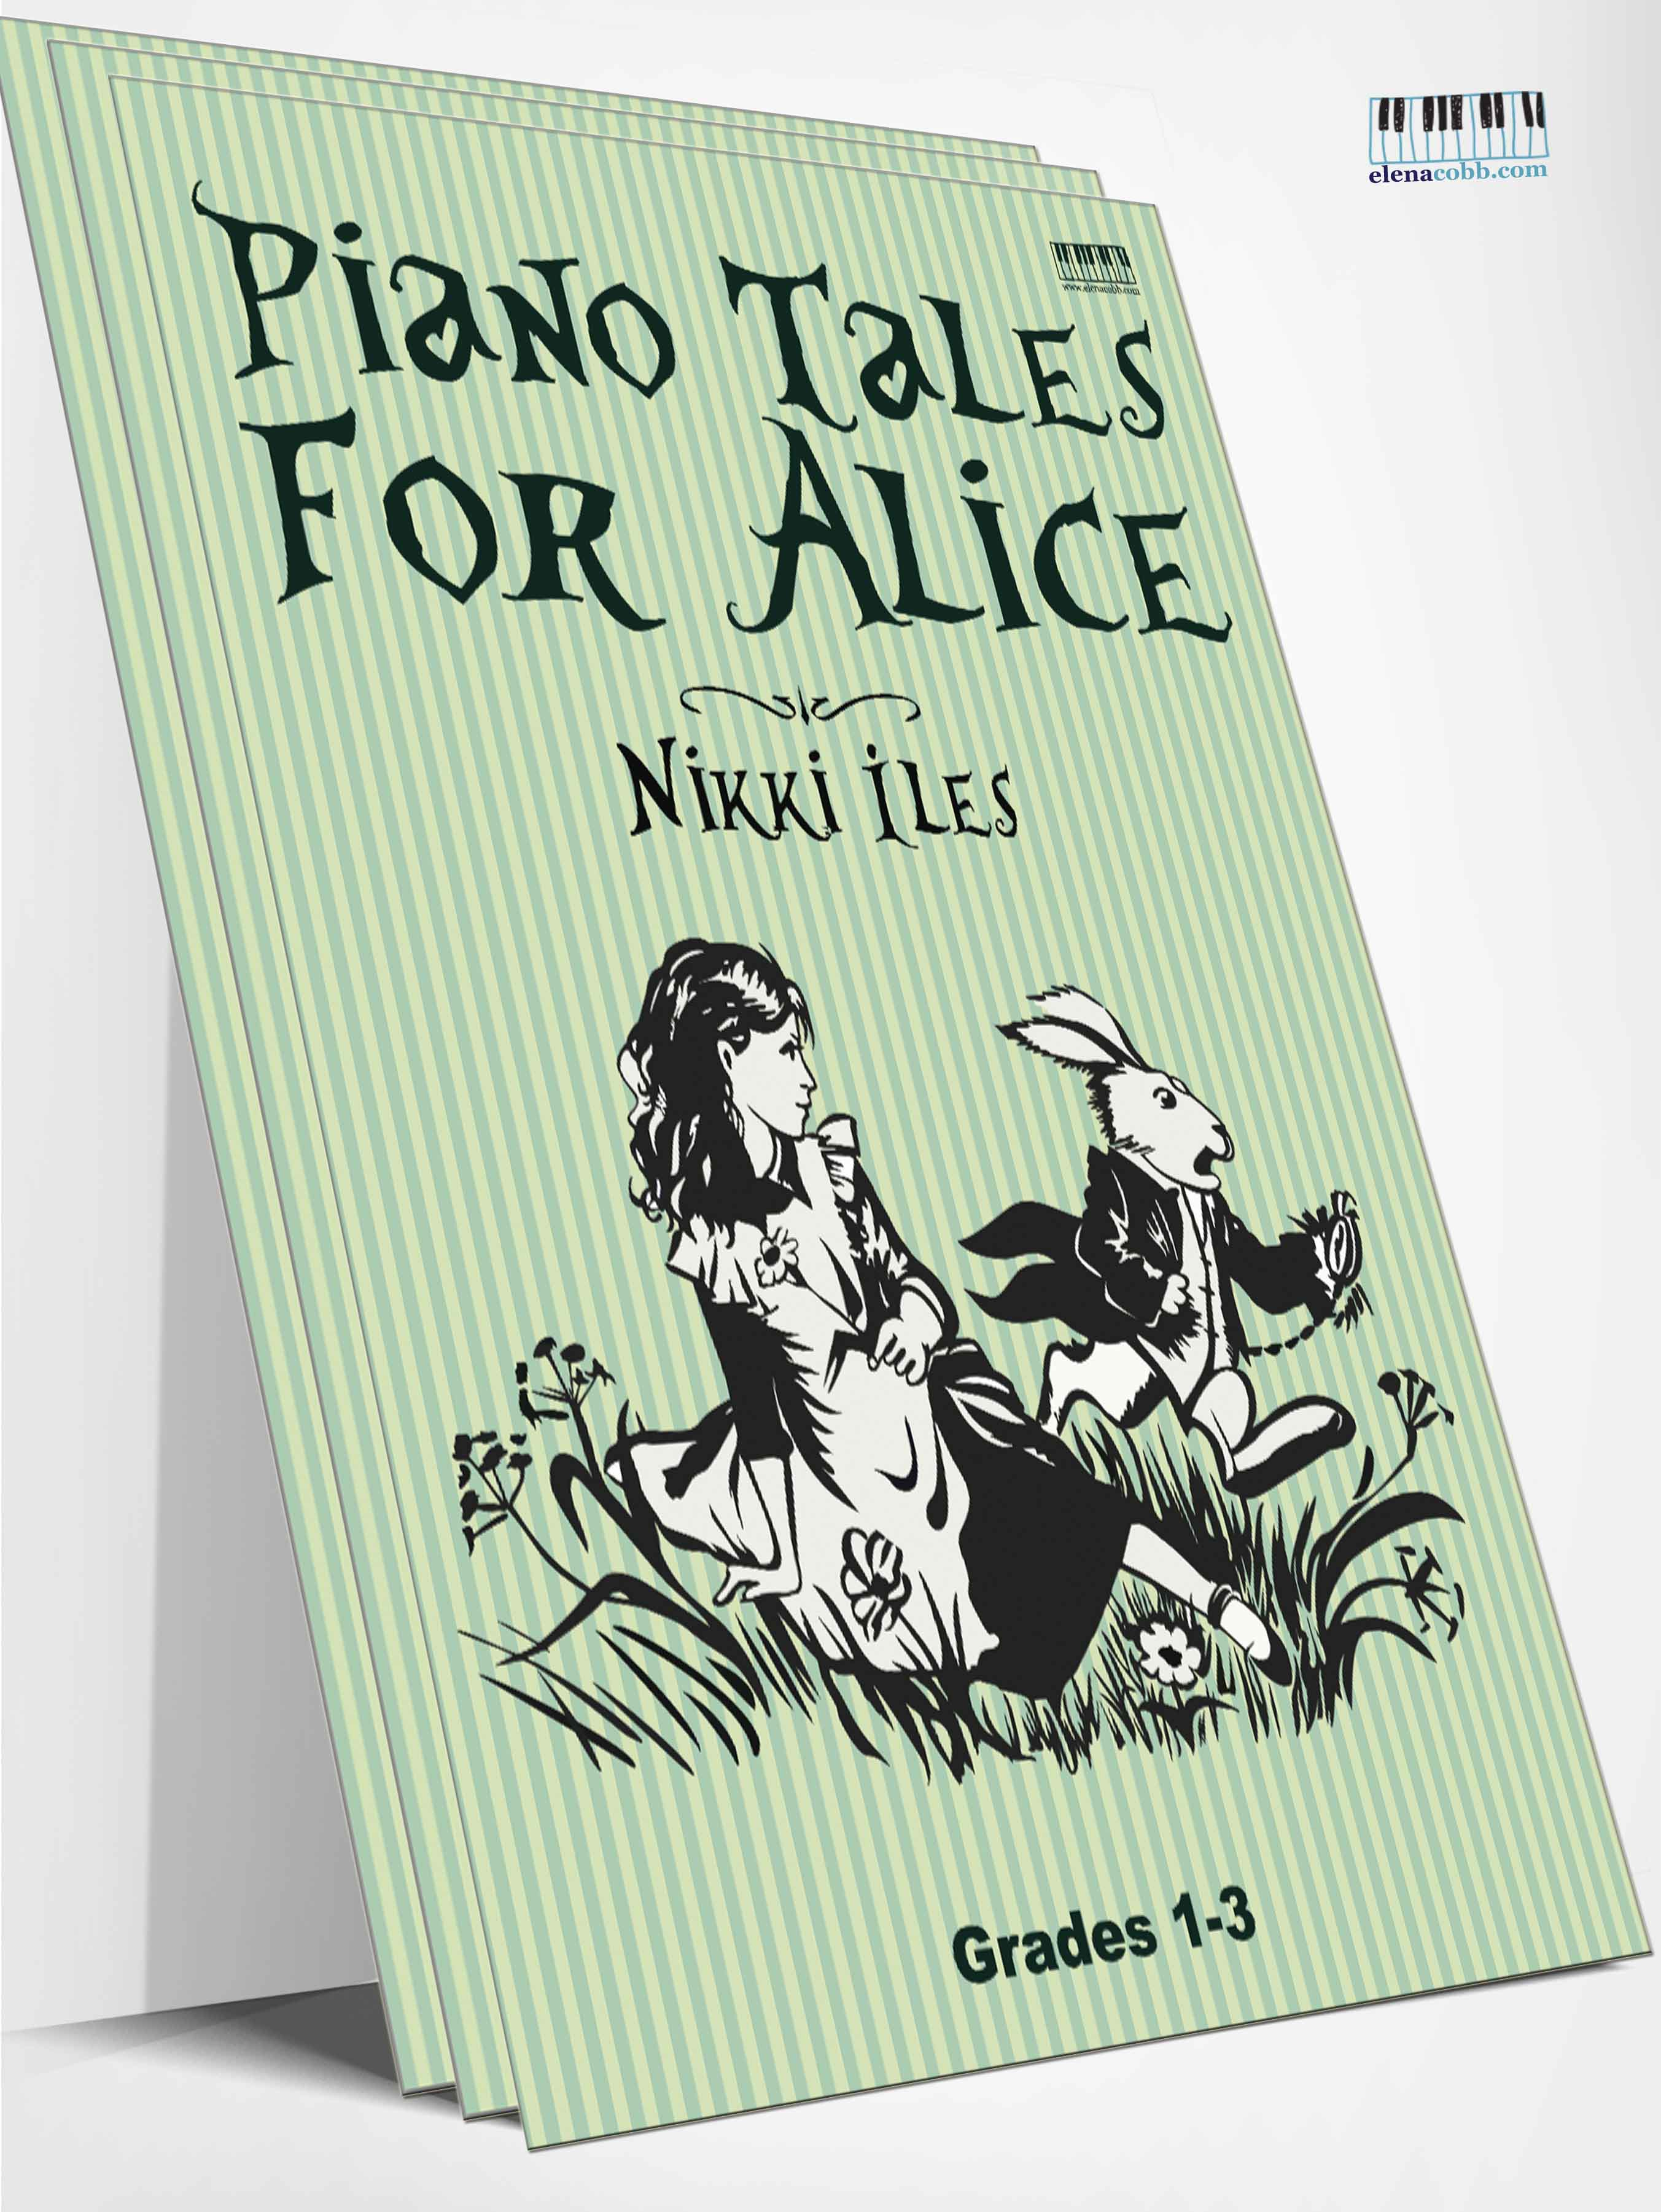 Piano Tales For Alice by Nikki Iles